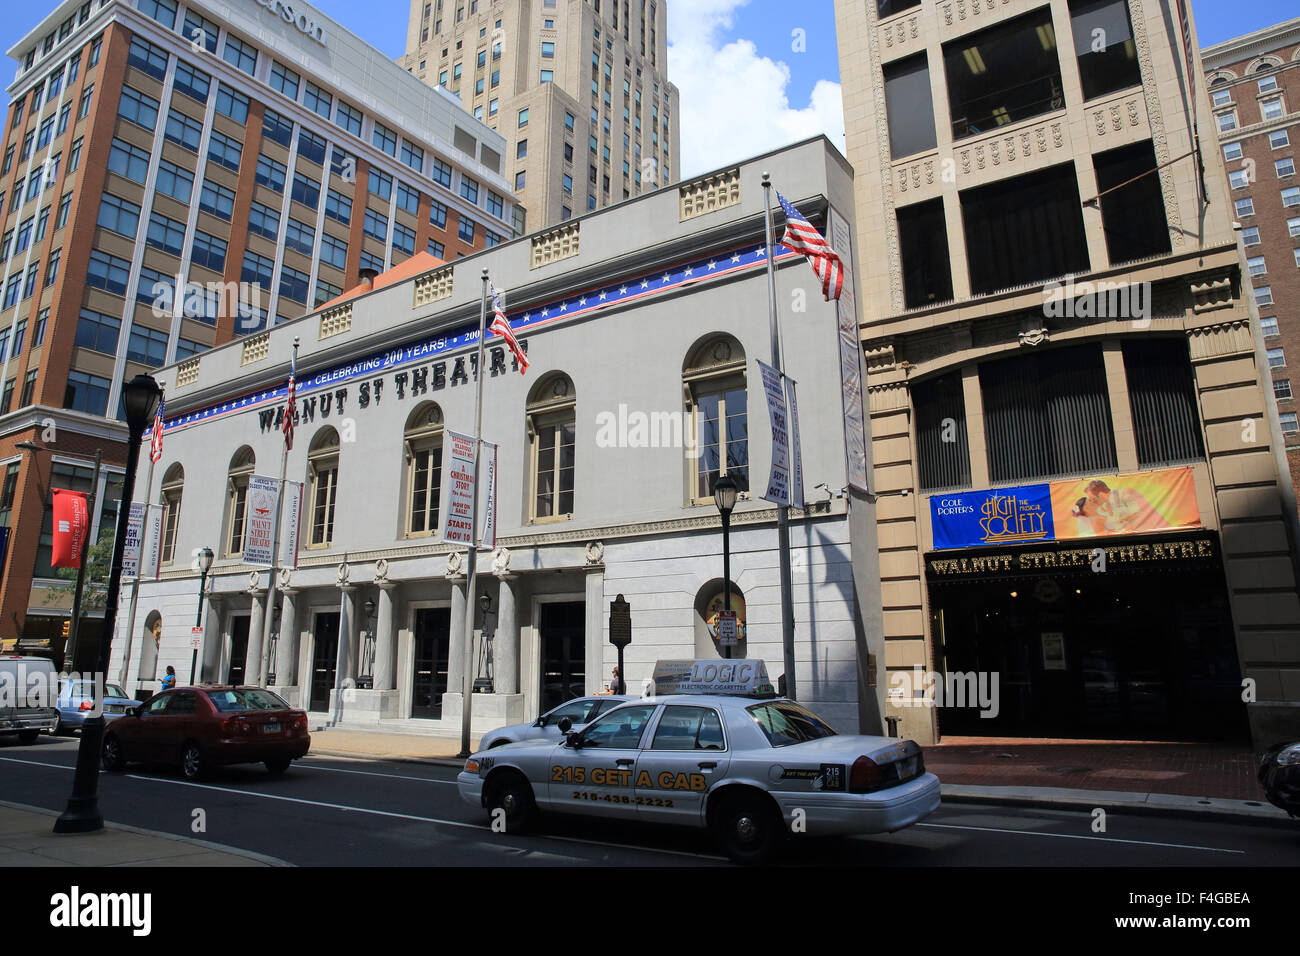 Walnut Street Theatre, in Philadelphia, Pennsylvania, the oldest theatre in the USA. - Stock Image